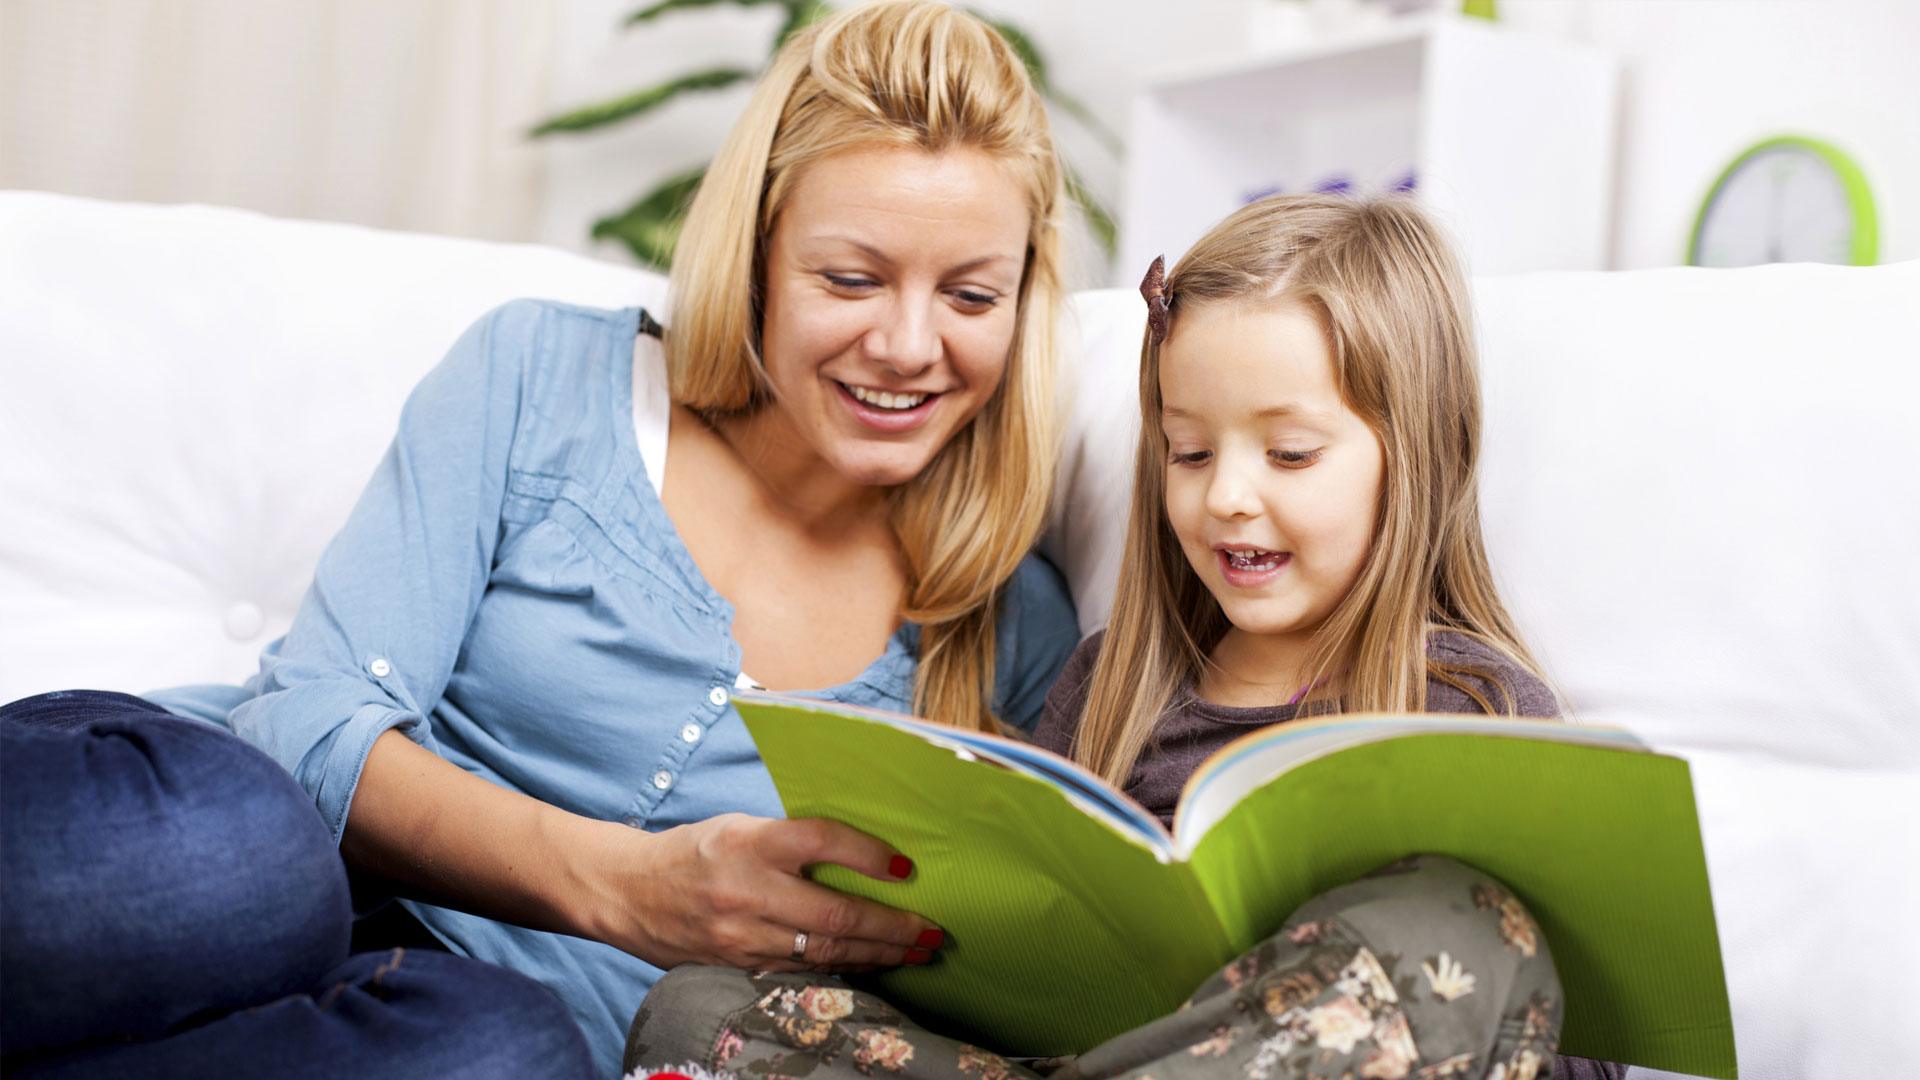 Mouther and daughter reading a book